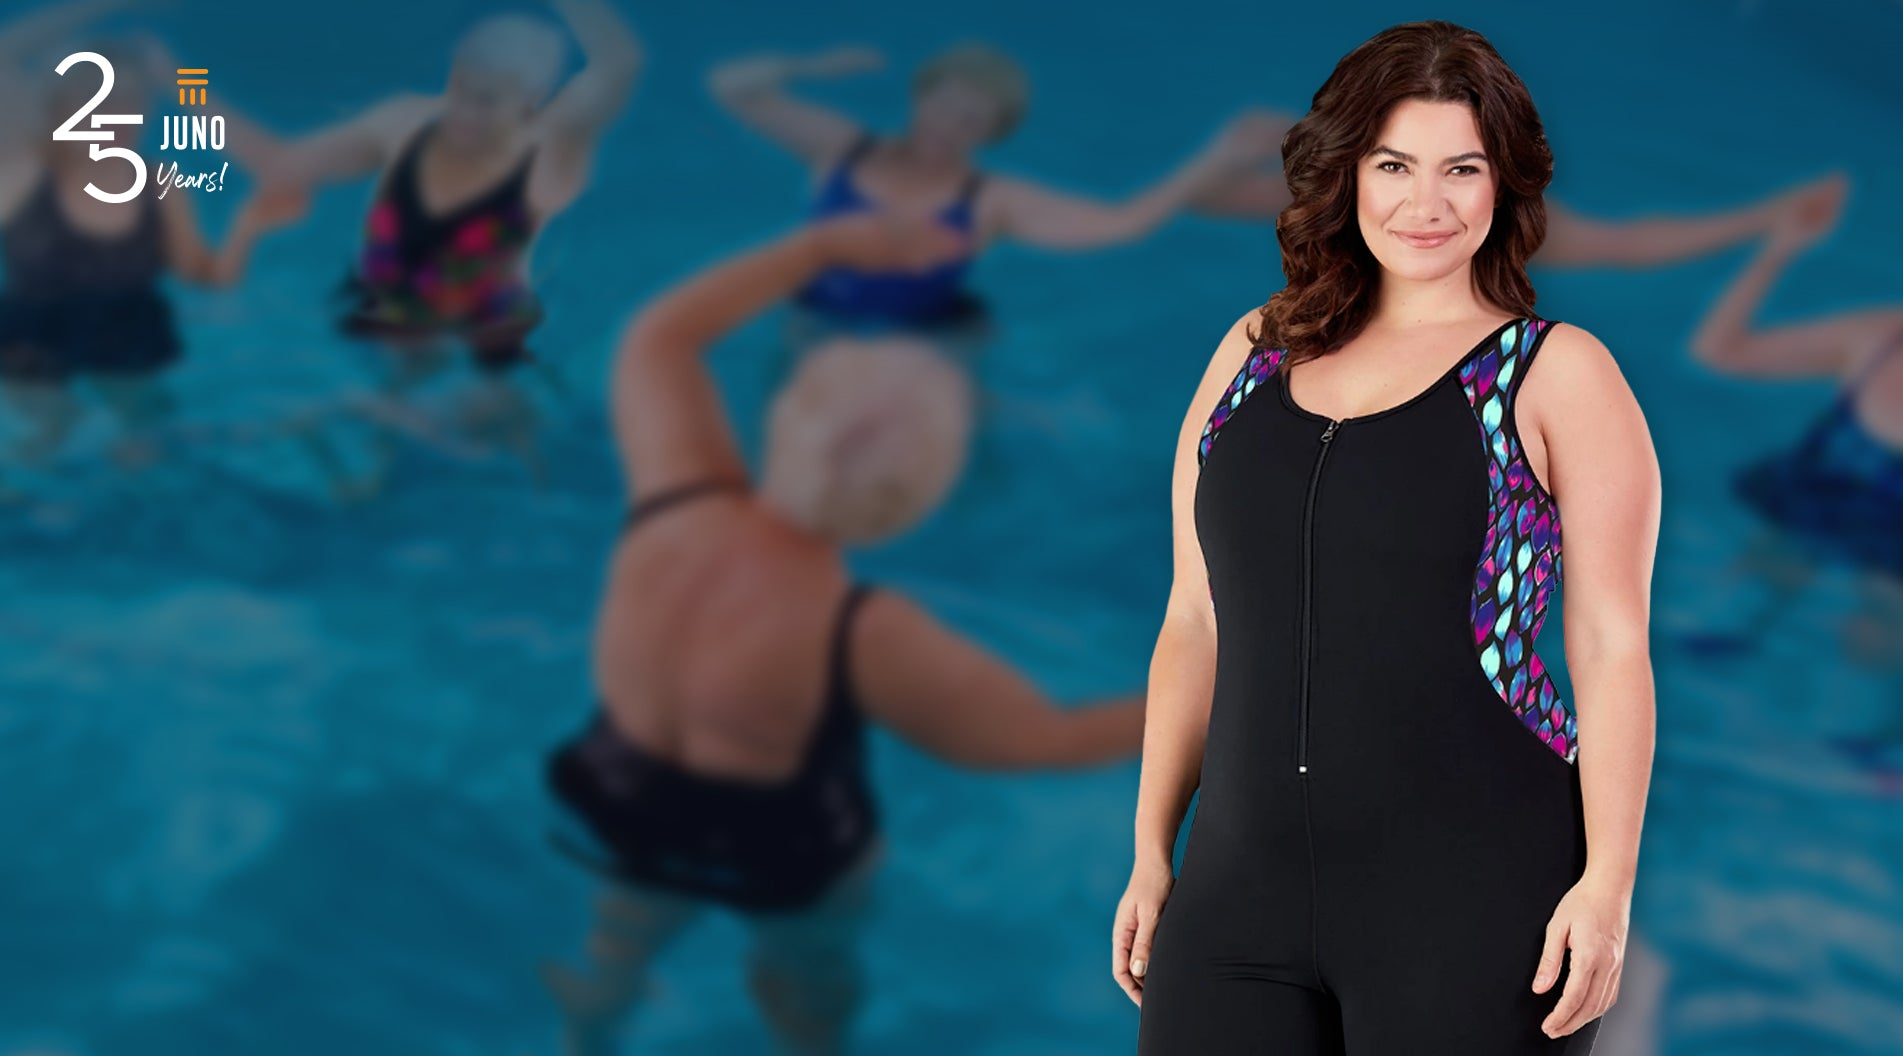 JunoActive plus size women's swimwear